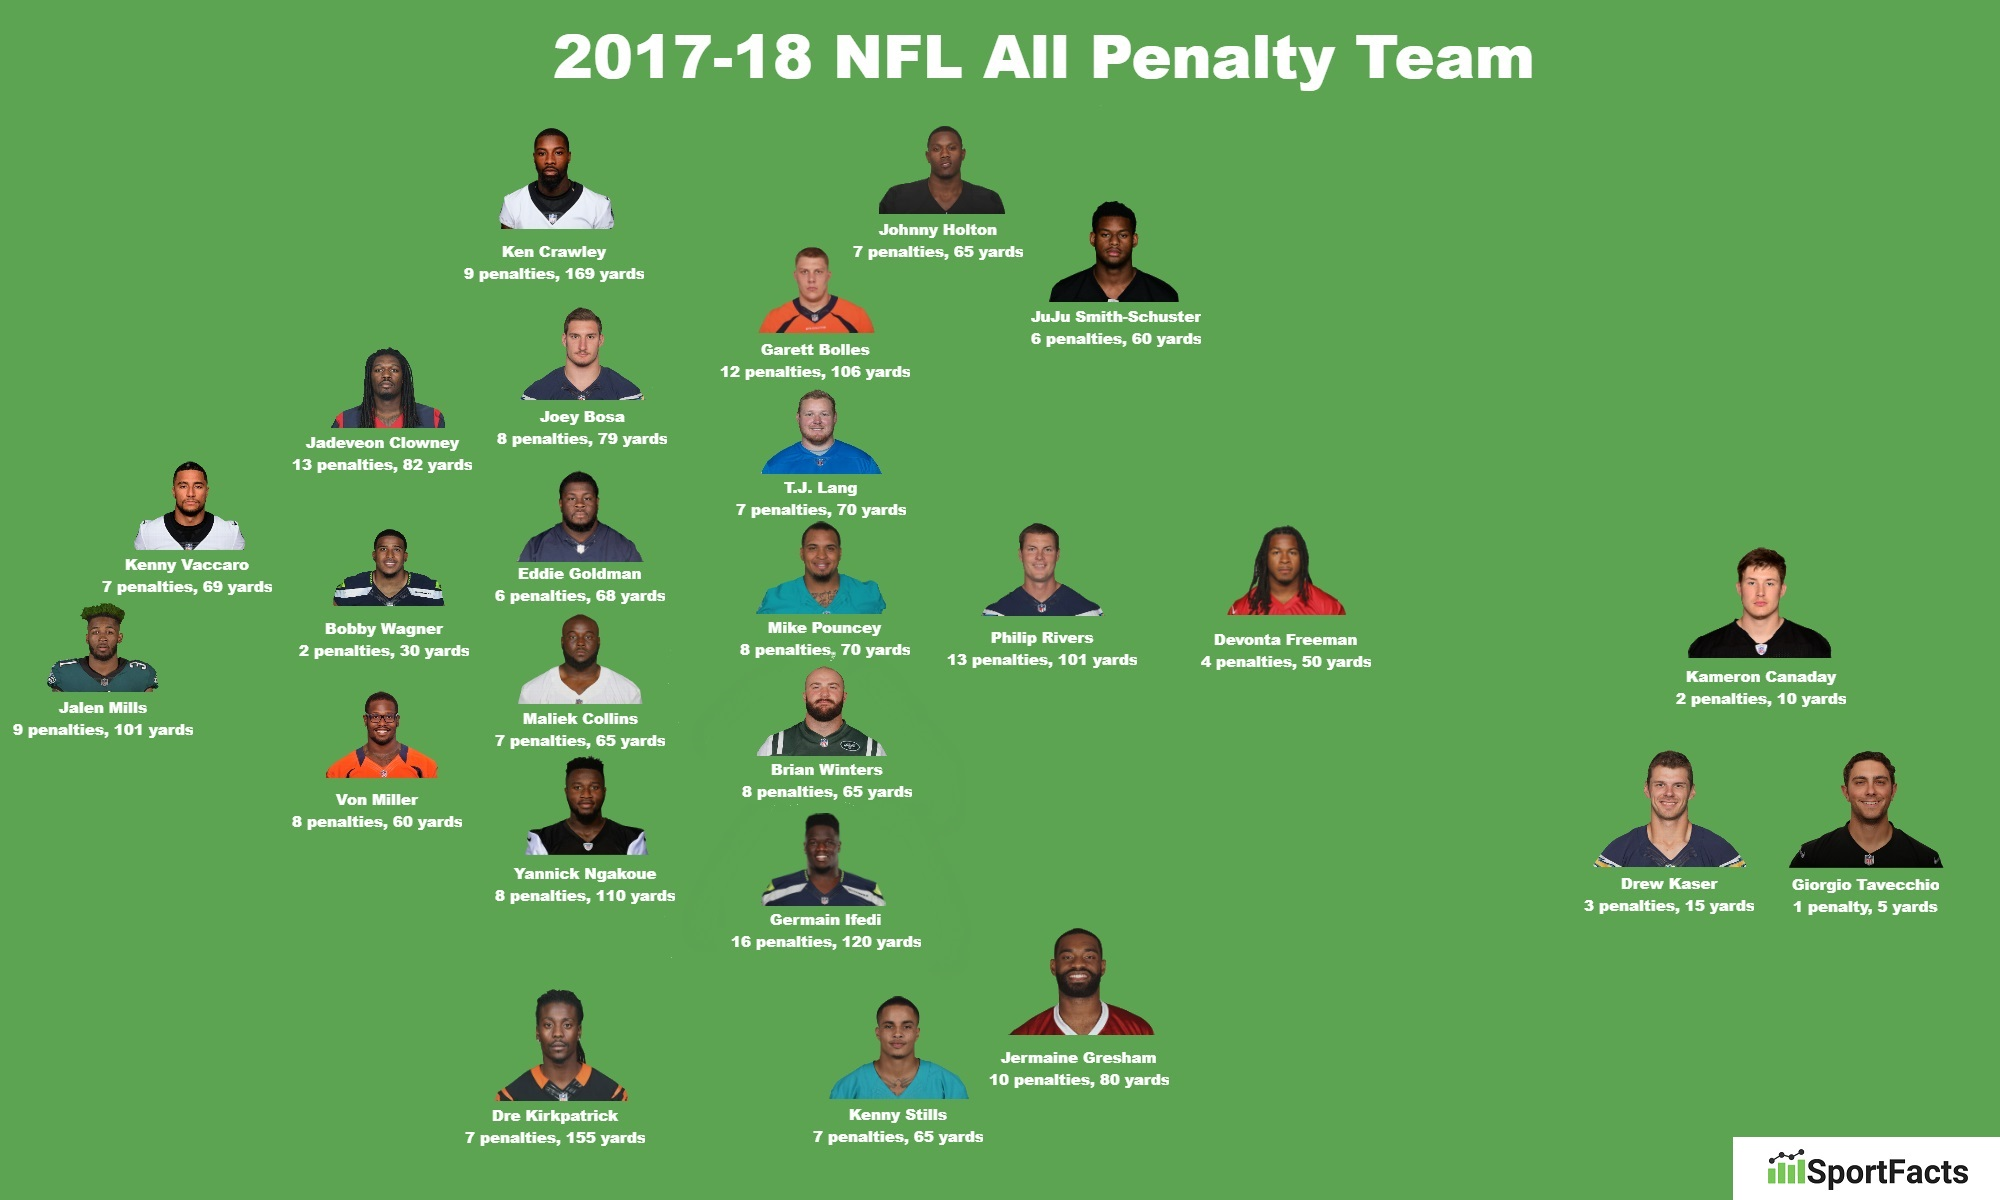 nfl-all-penalty-team-2017-19